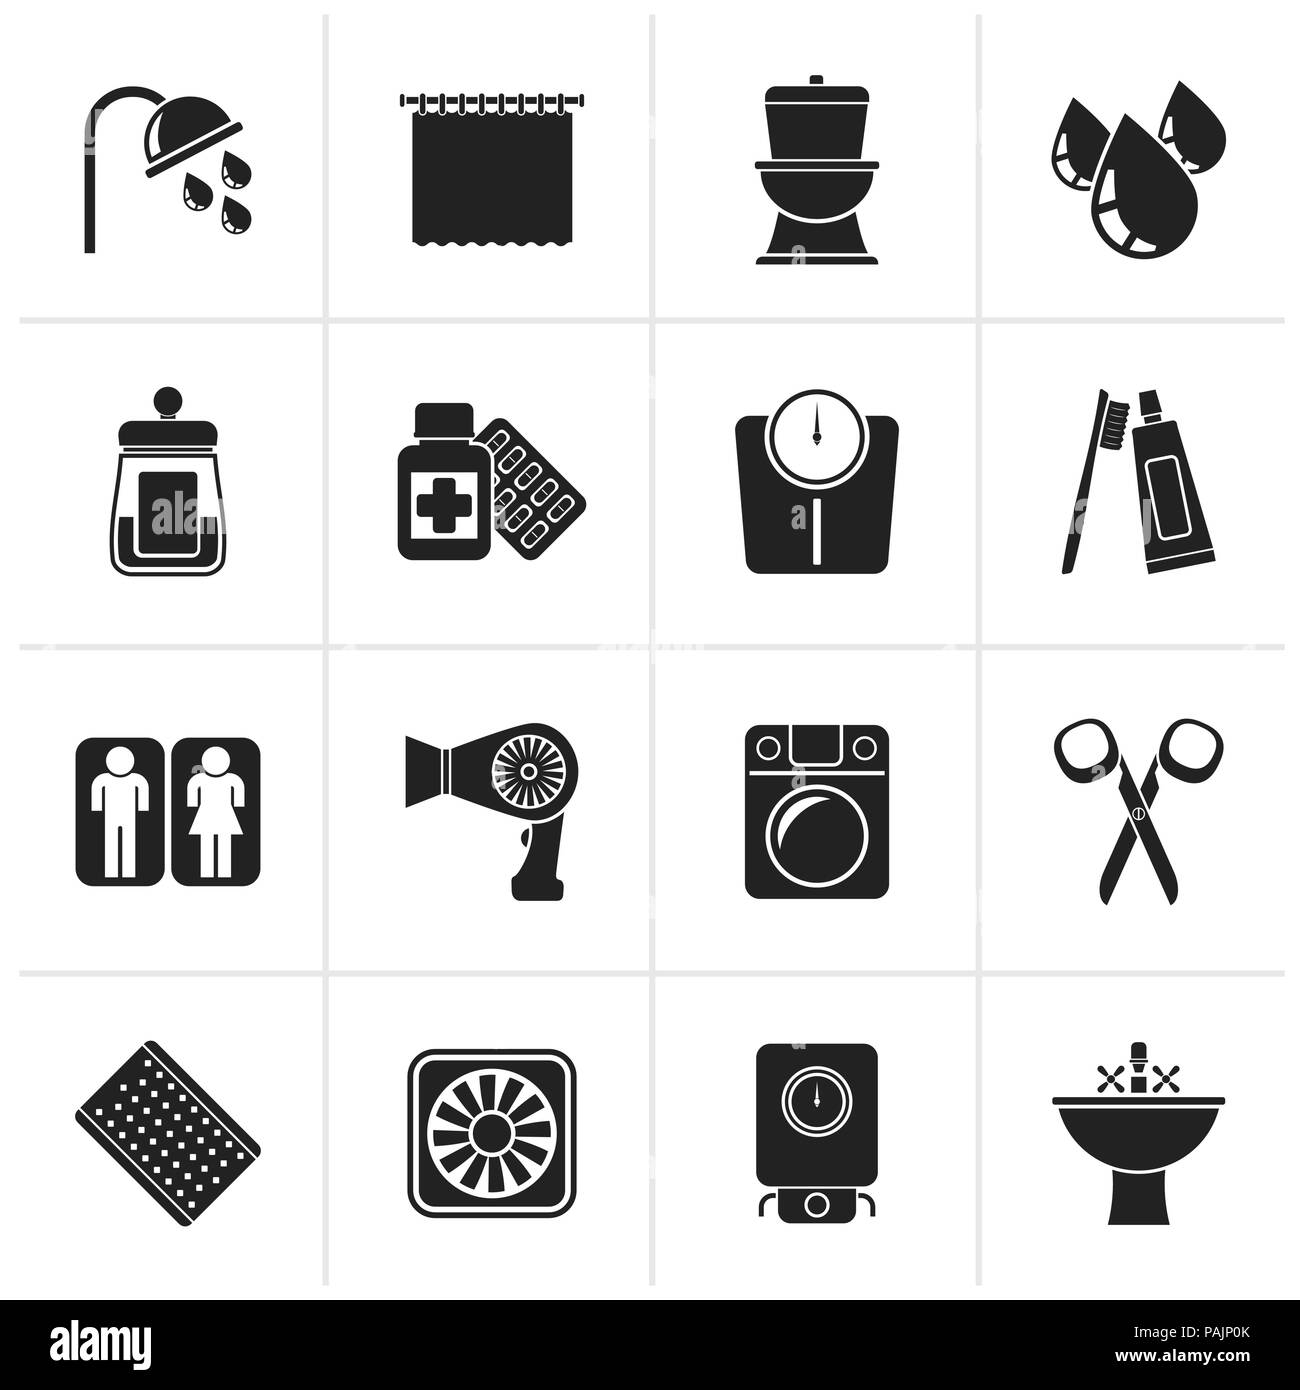 Black Bathroom and Personal Care icons- vector icon set 2 - Stock Image